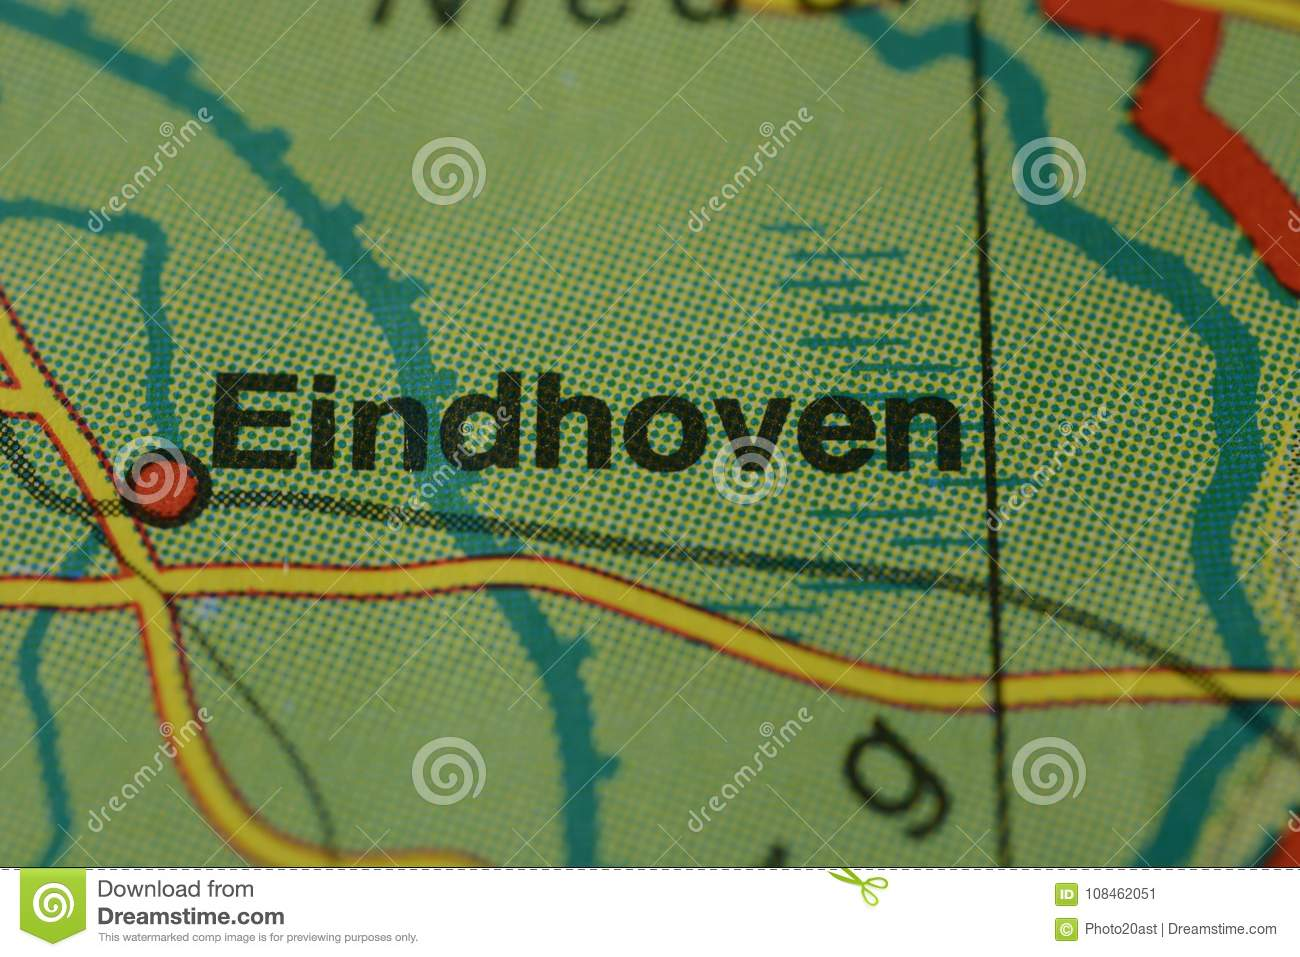 The City Name EINDHOVEN On The Map Stock Image - Image of ...